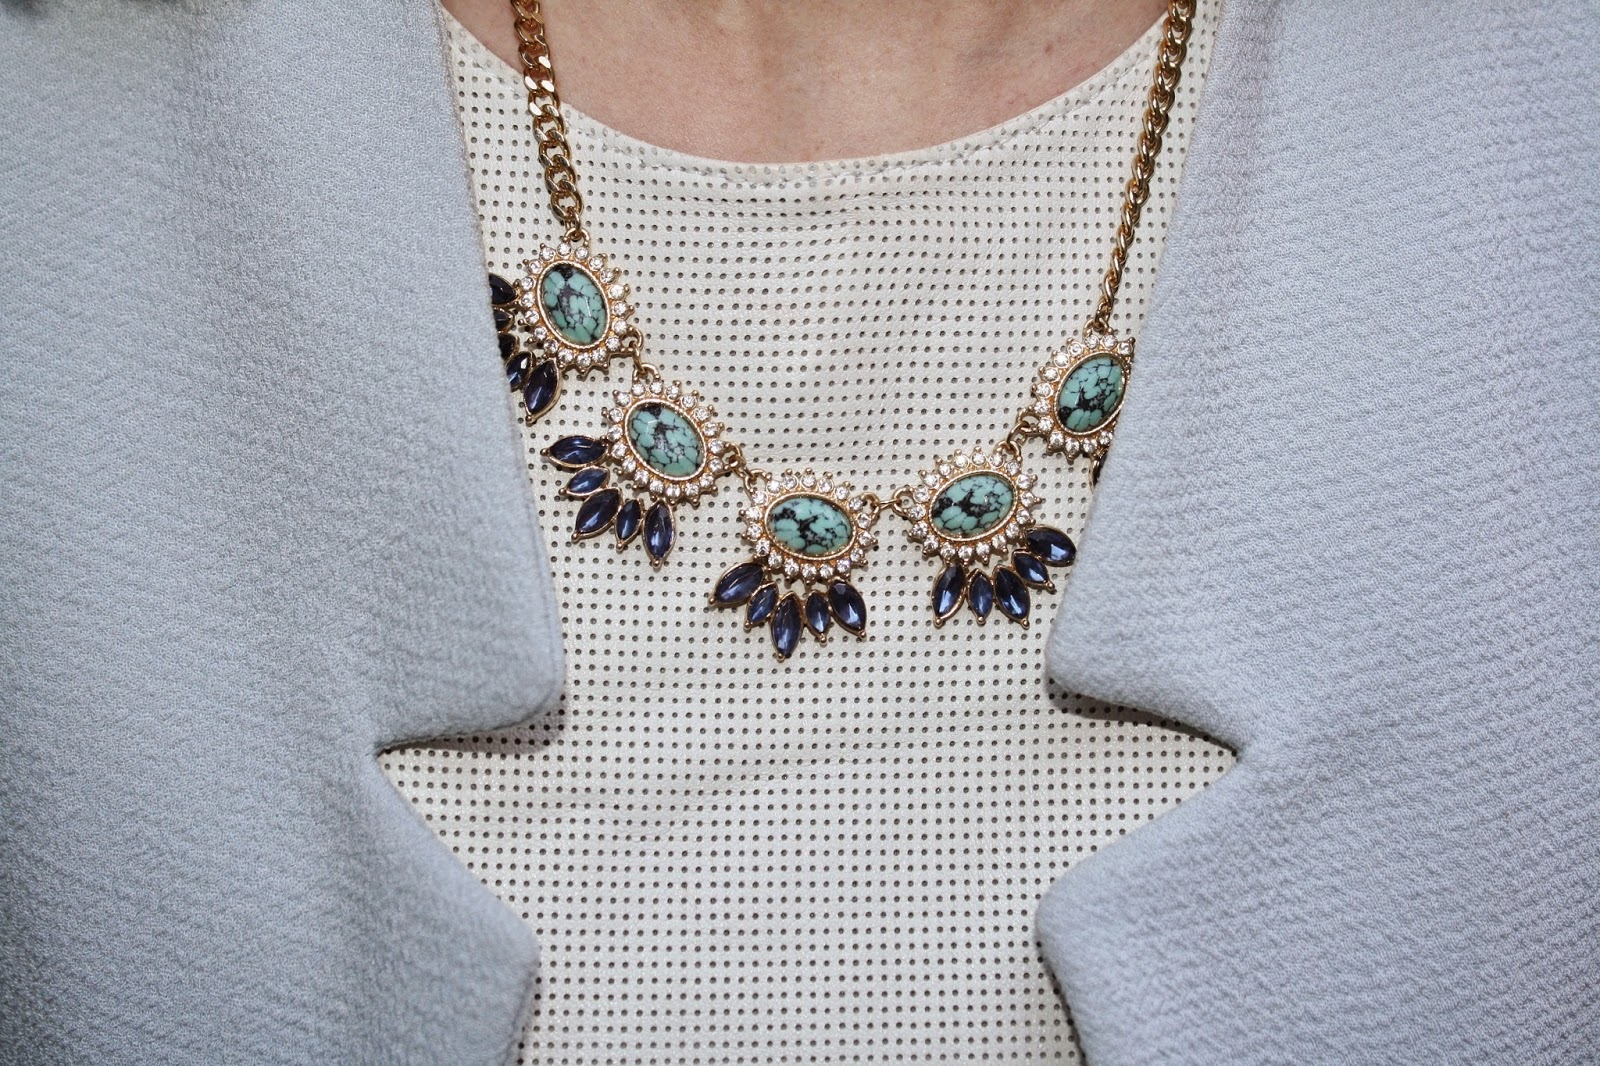 primark necklace